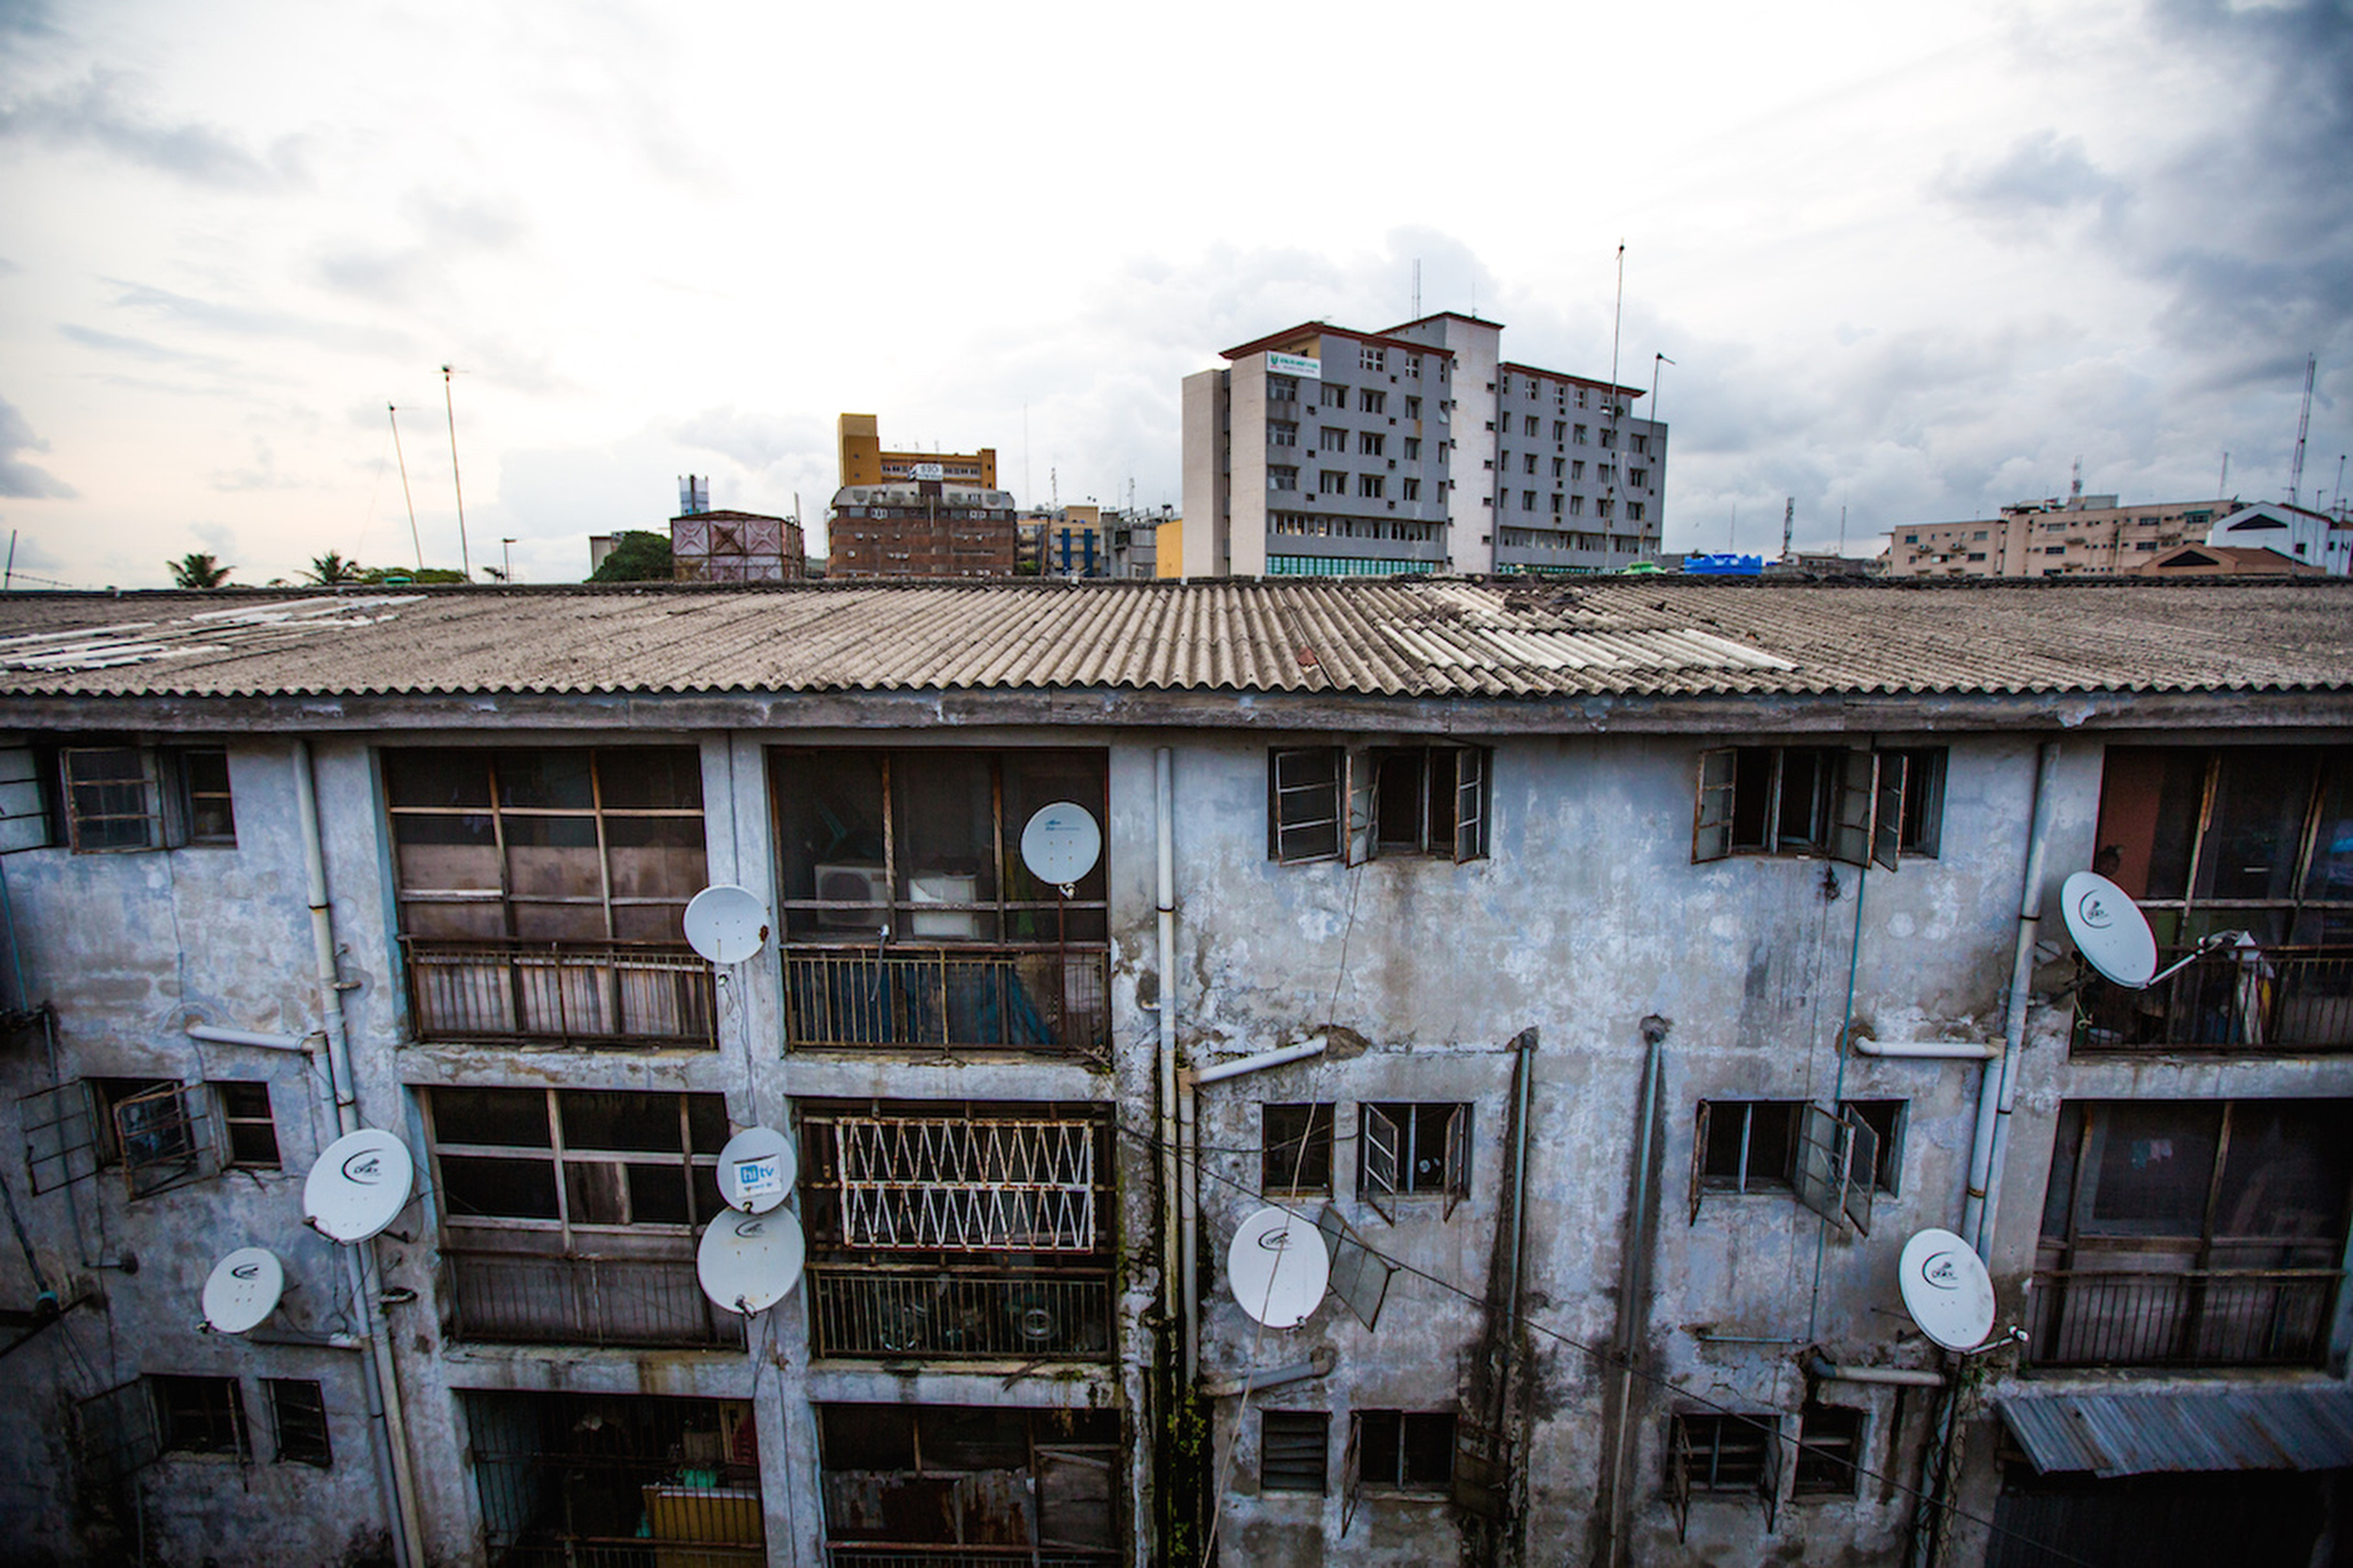 An old low income apartment block in Onikan, Lagos, Nigeria. (Tom Saater)